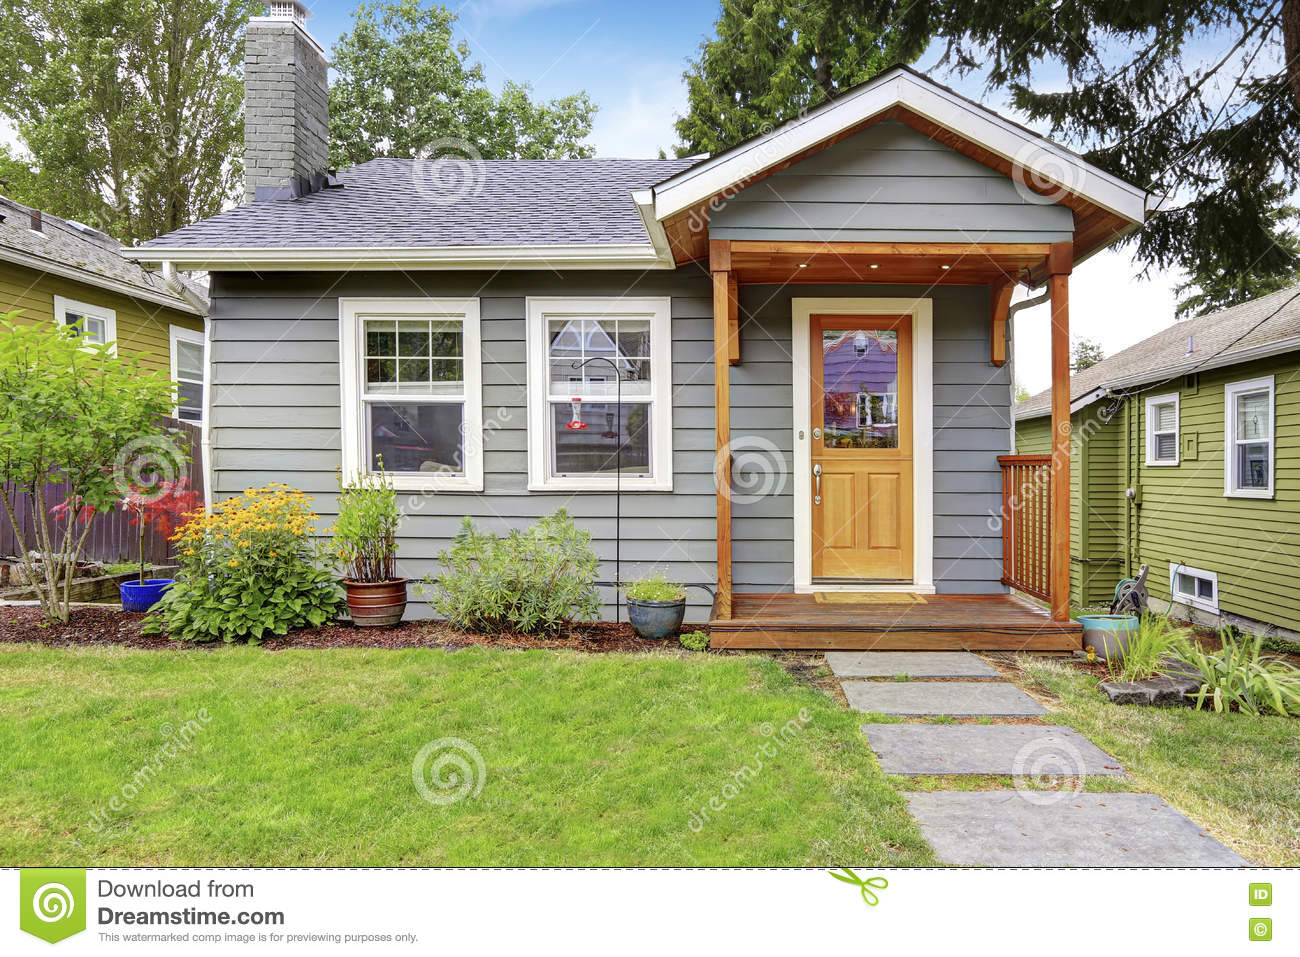 Small American House With Gray Exterior Paint Stock Photo